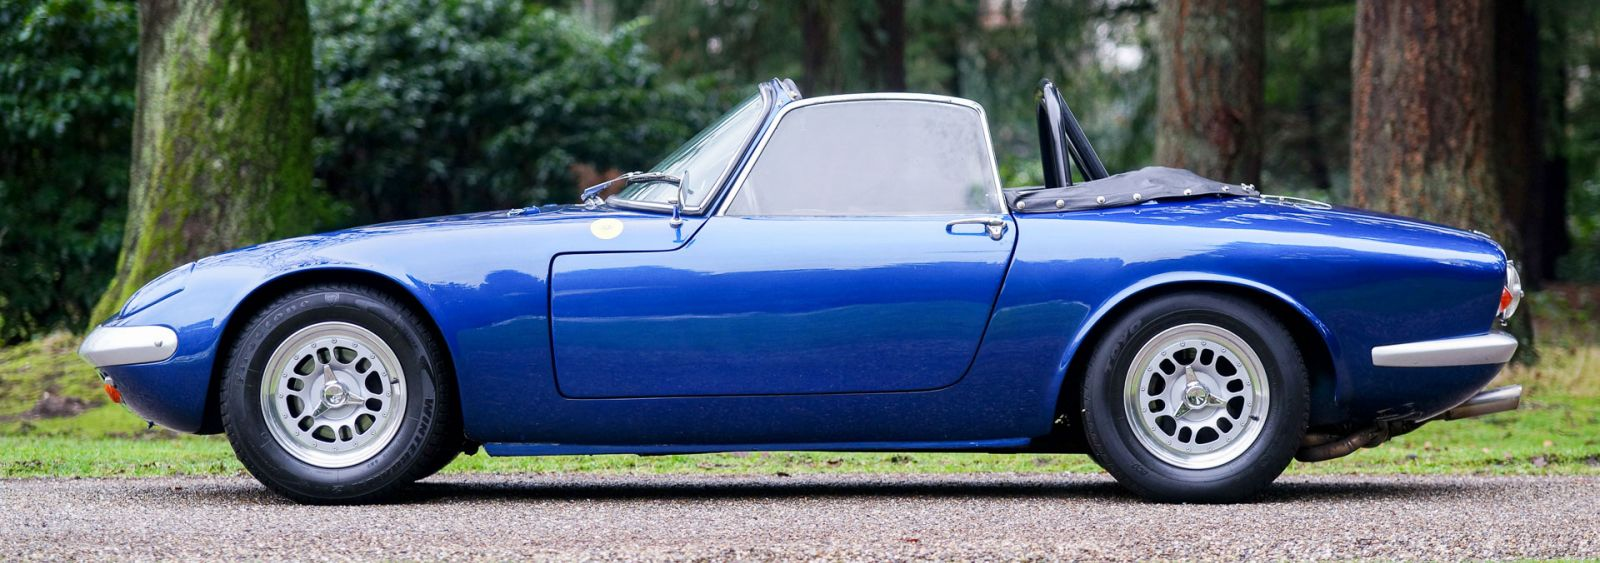 Lotus Elan Series 3, 1966